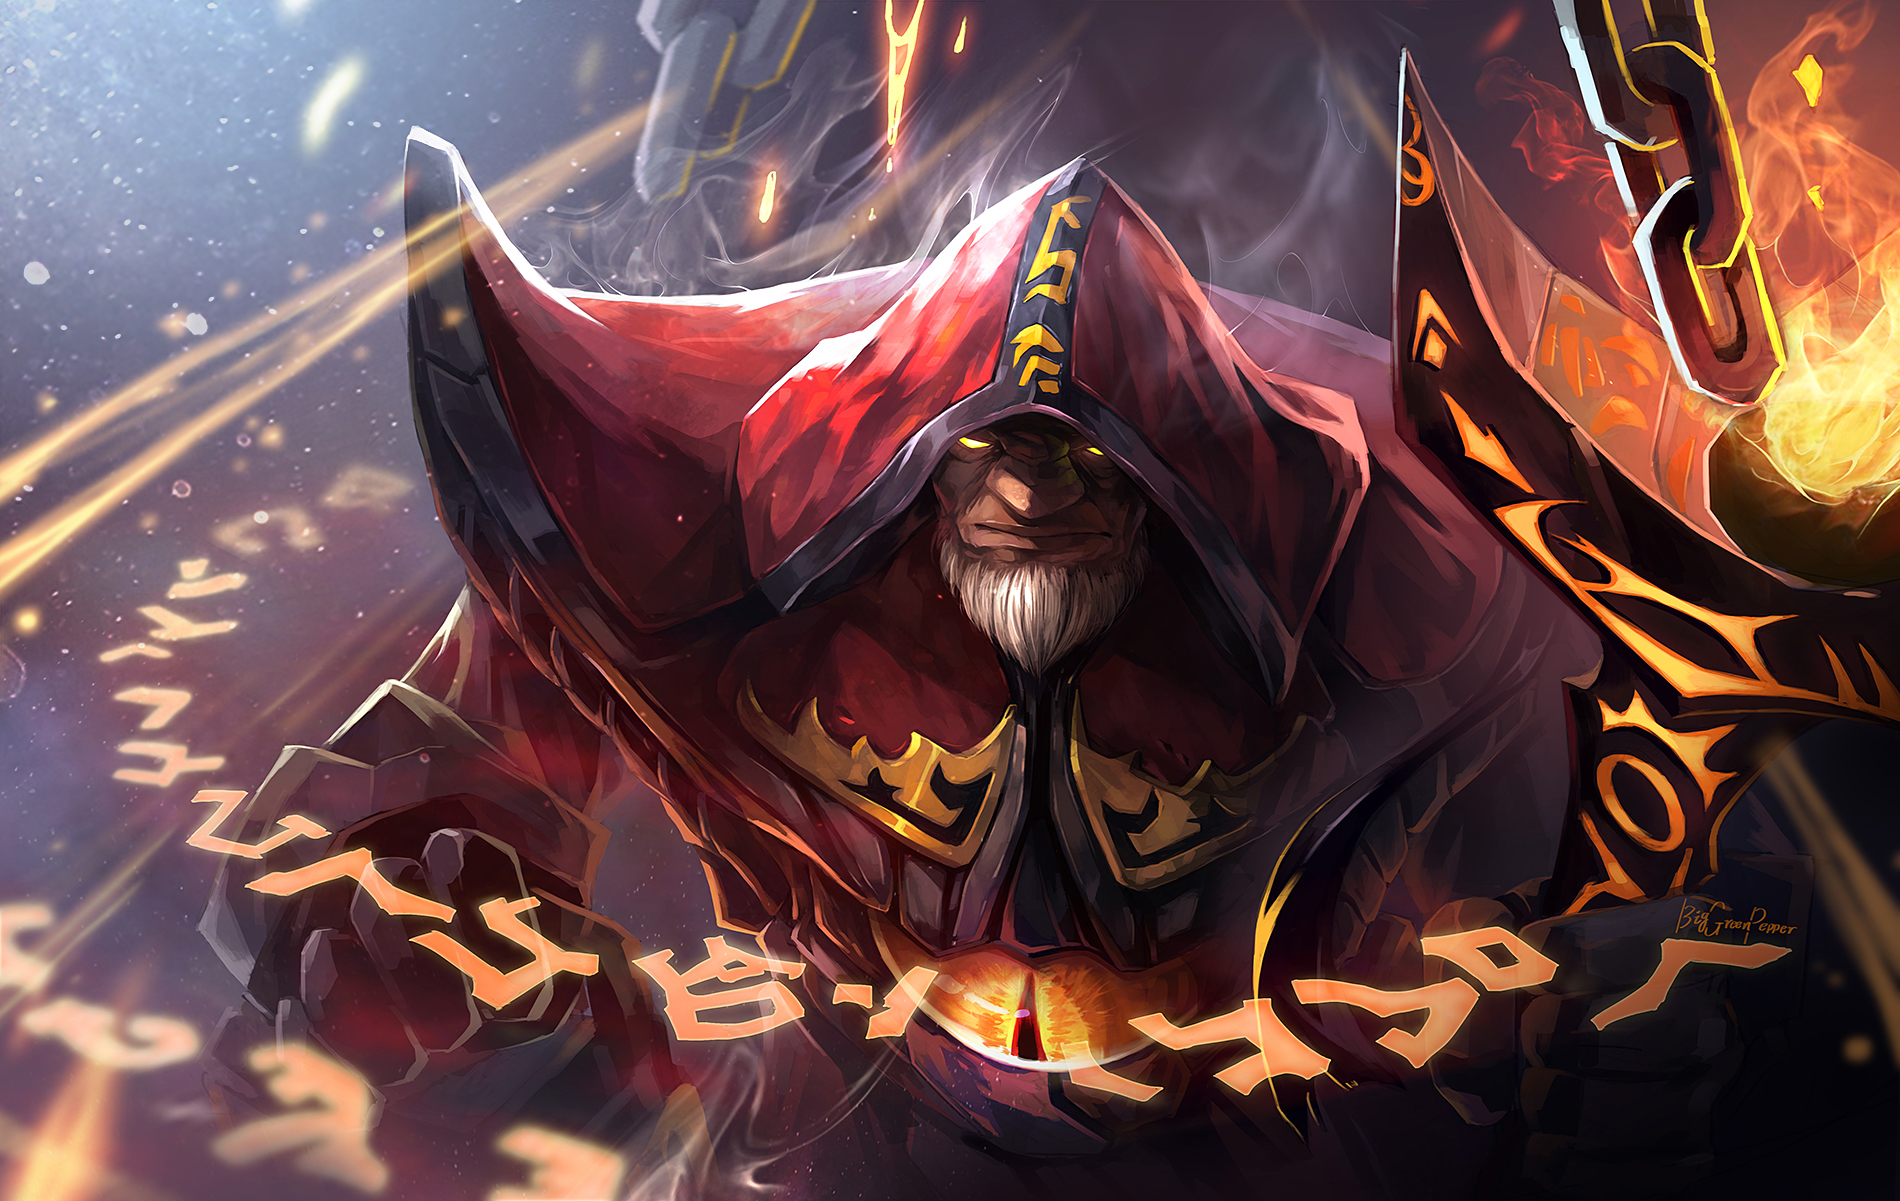 dota2 The Warlock by biggreenpepper